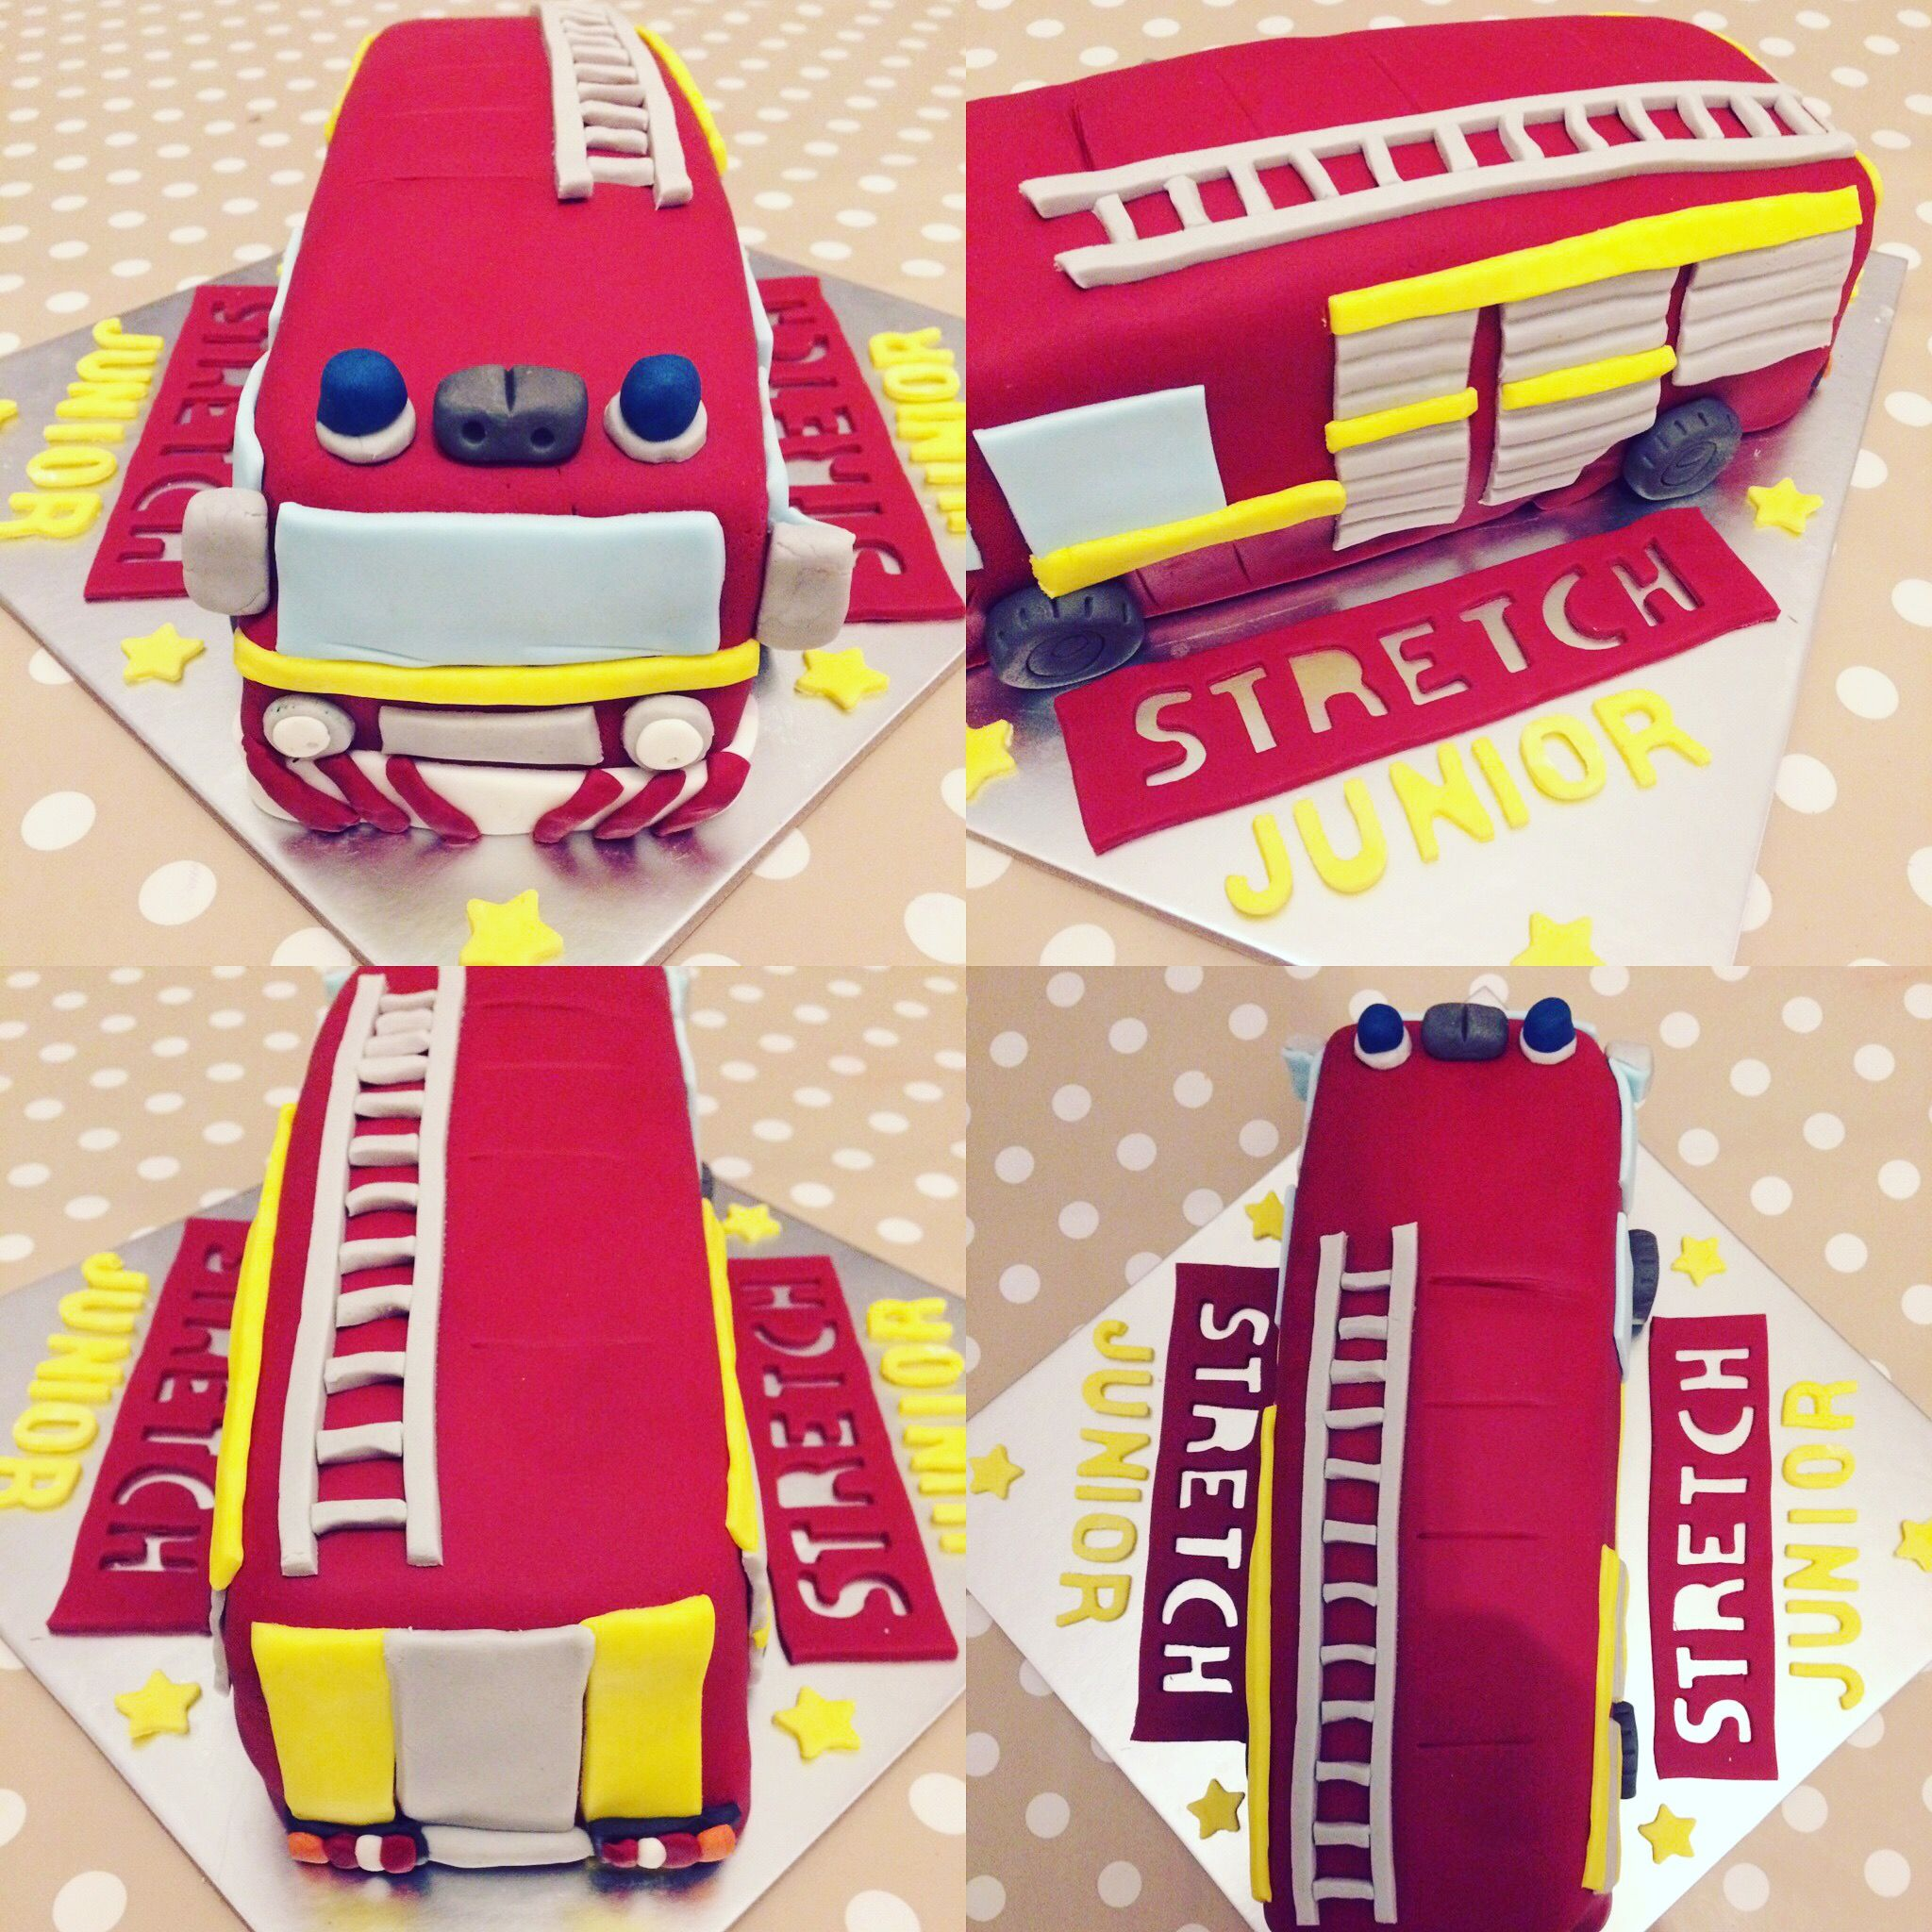 Fire engine cake to celebrate a new arrival! From cafe